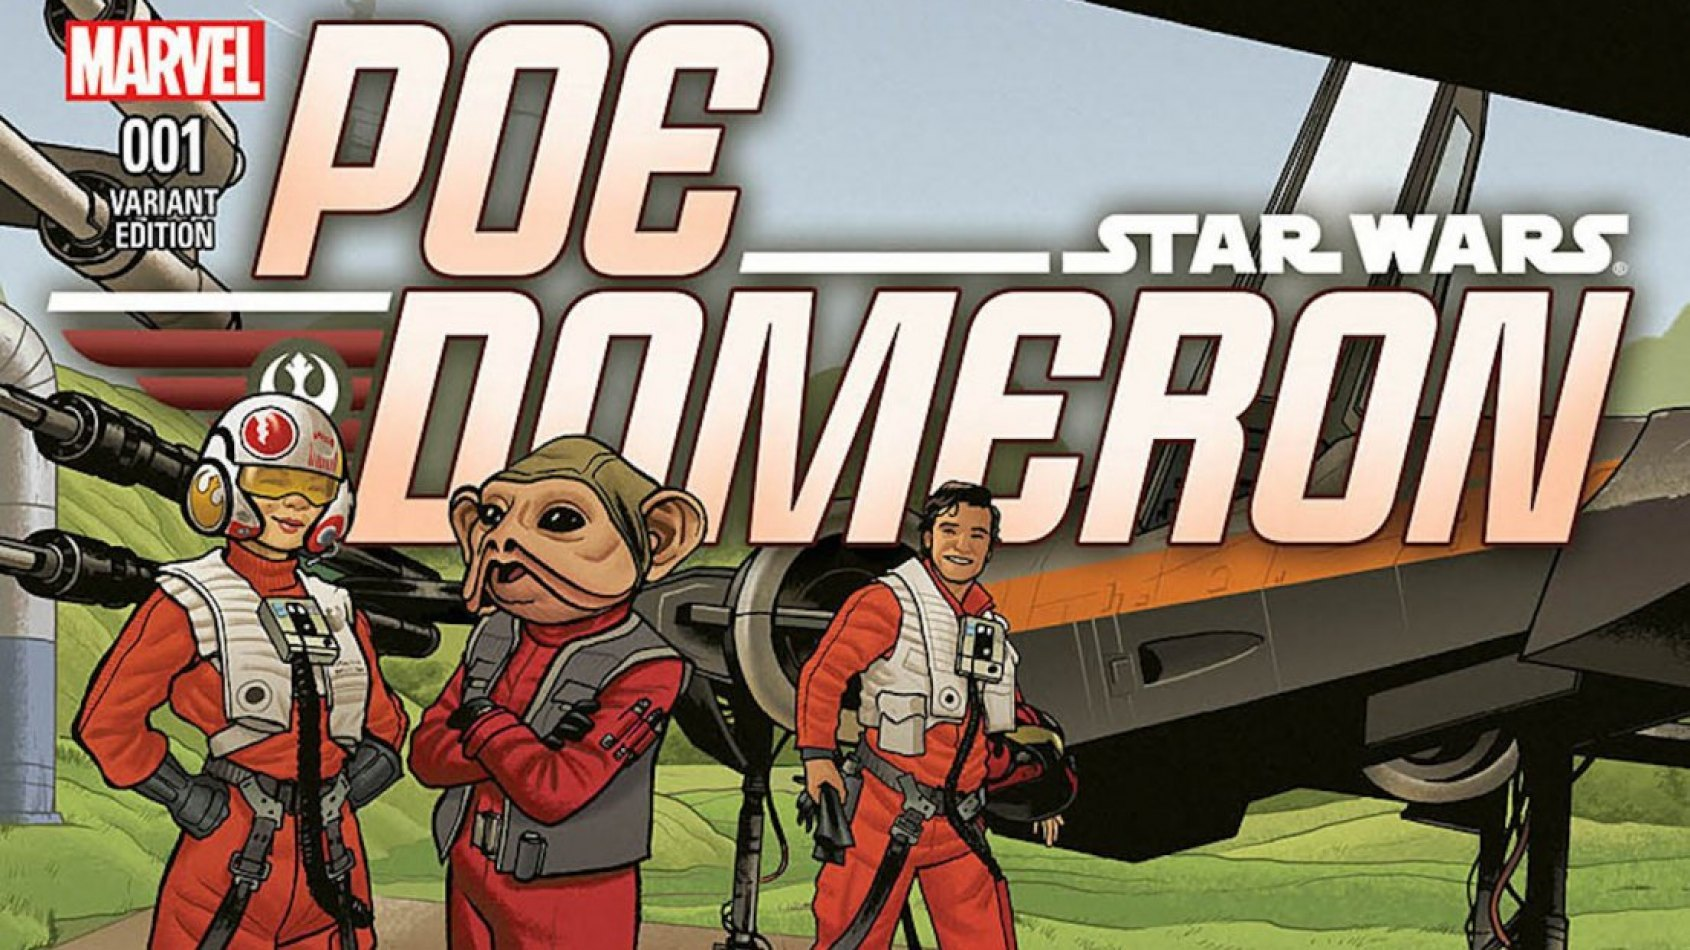 Preview pour le comic sur Poe Dameron